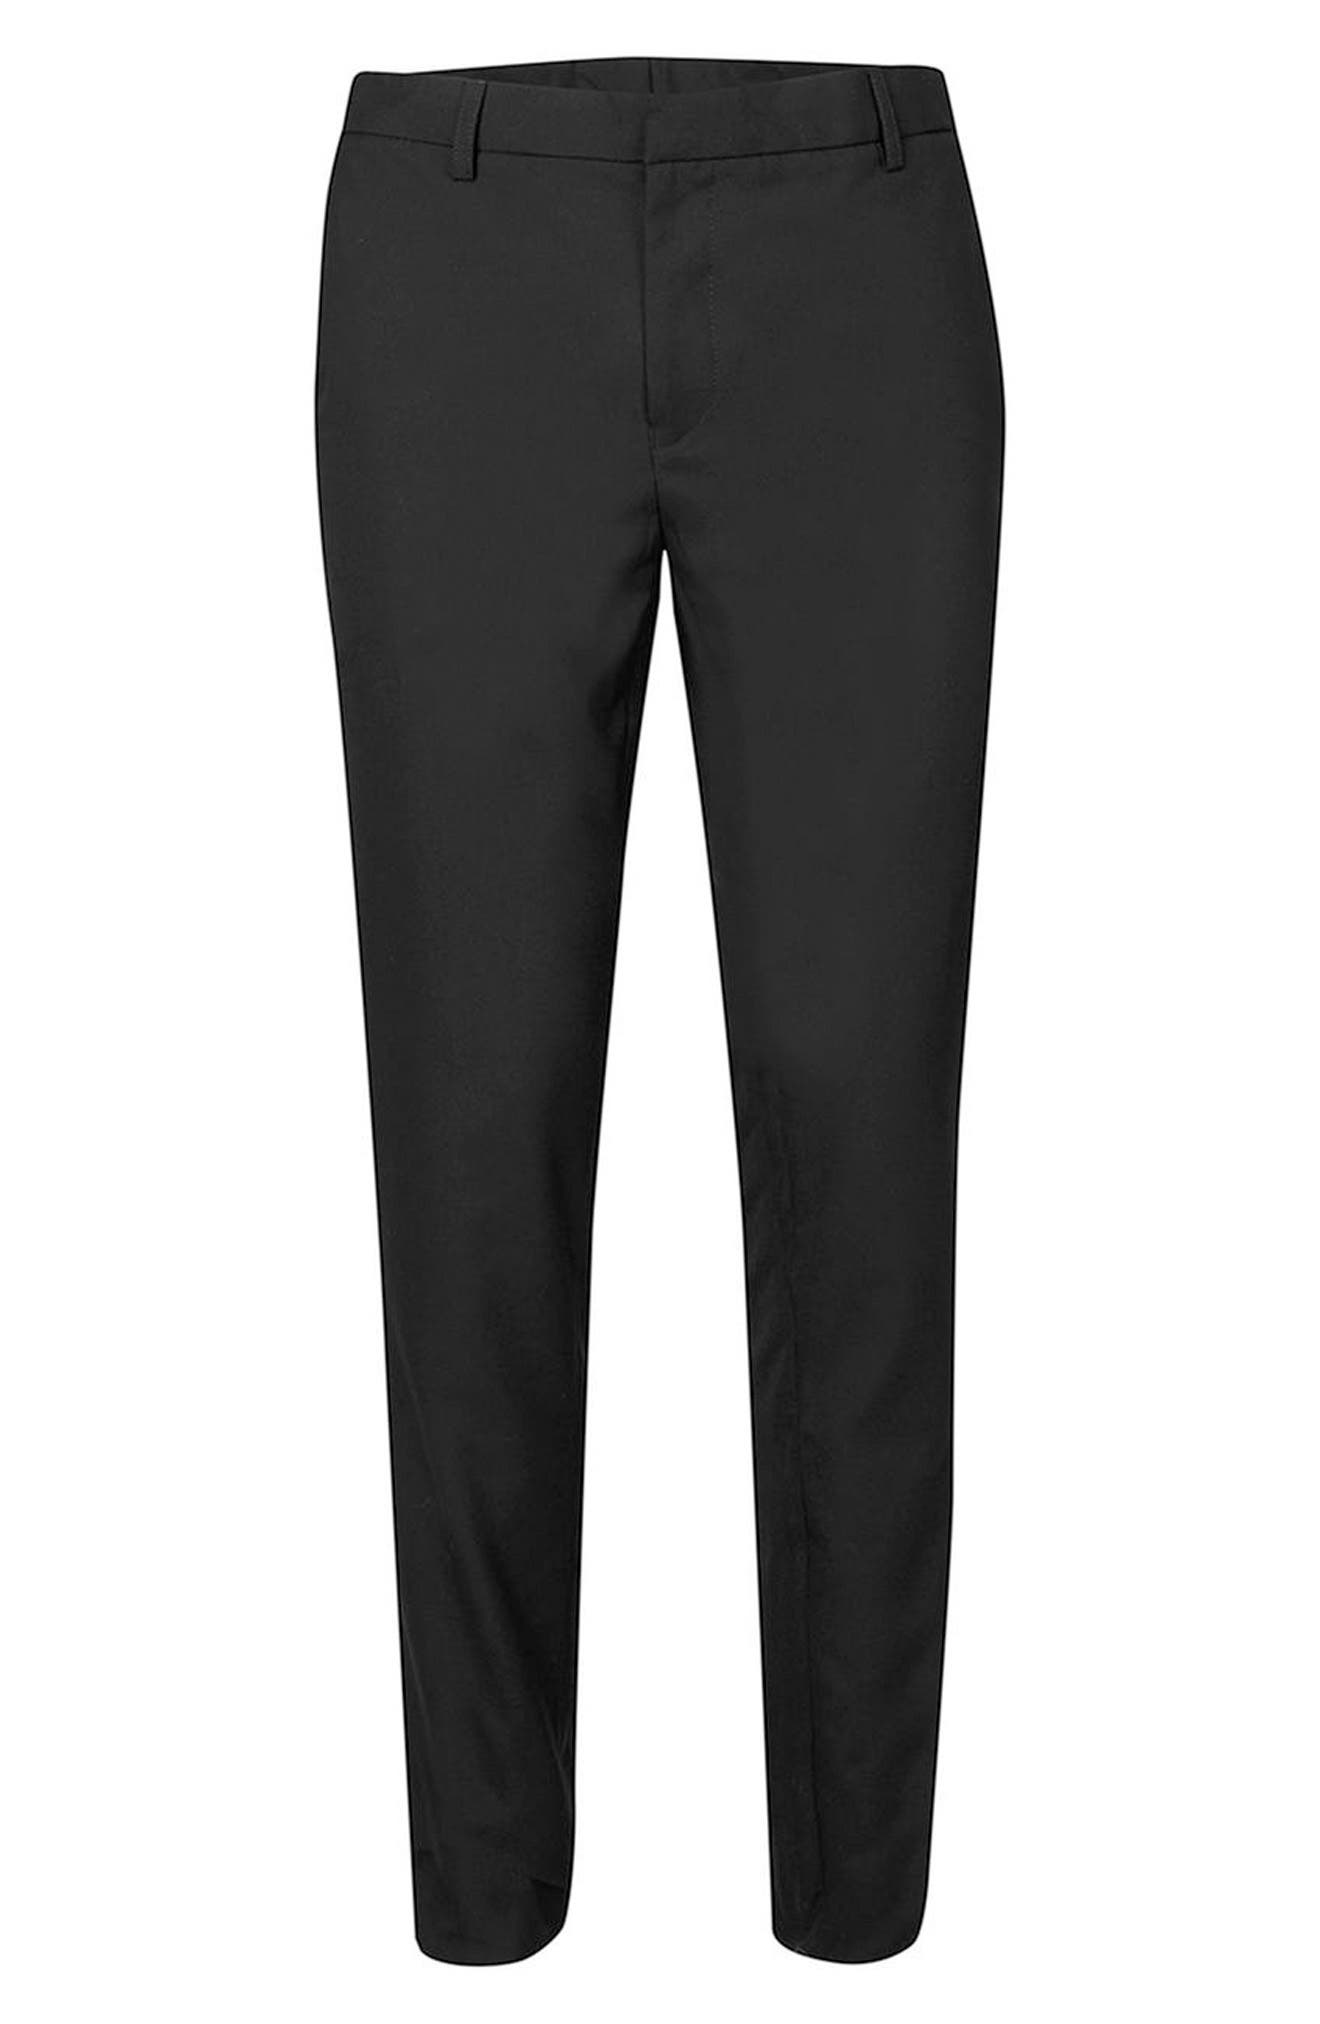 Skinny Fit Pants,                             Alternate thumbnail 4, color,                             Black